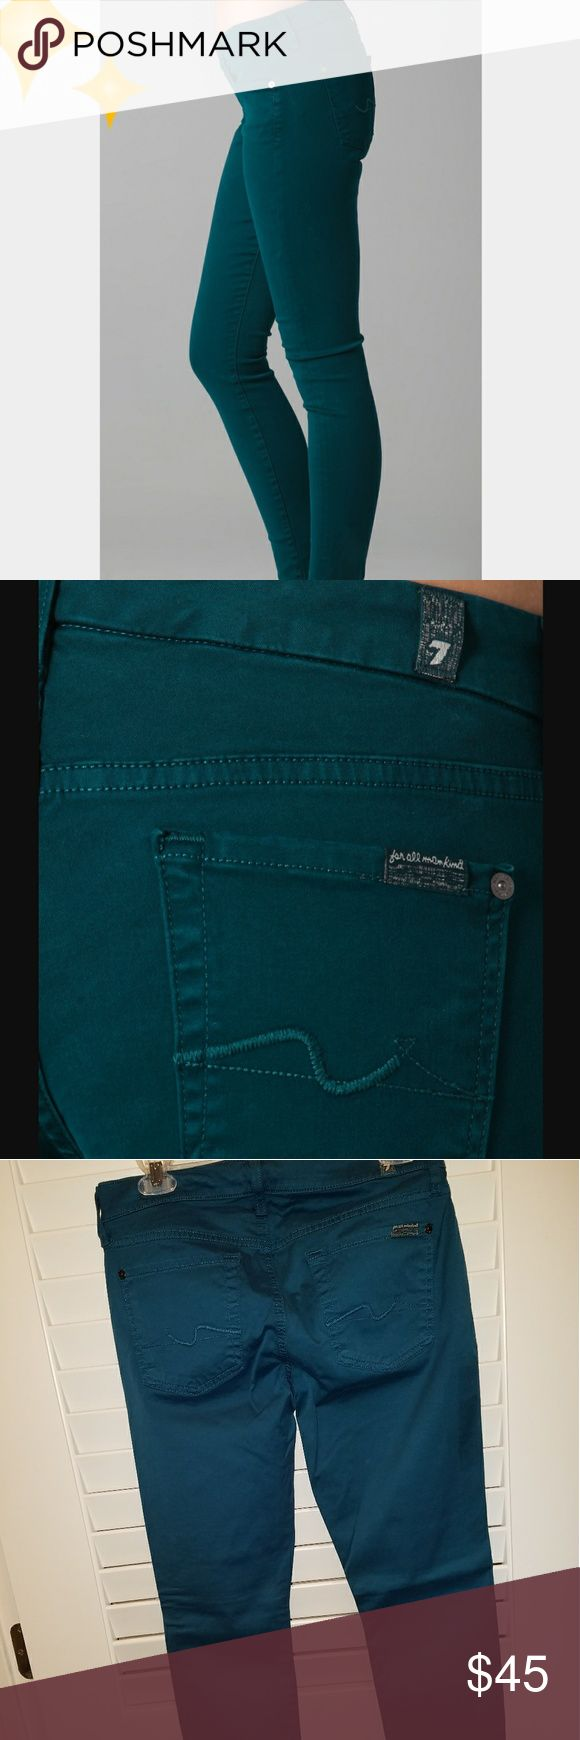 """Seven for all mankind  """"qwenevere """"JEANS Teal color skinny Jean with 8"""" rise. 29.5"""" inseam, size 28. NWT! 7 For All Mankind Jeans Skinny"""